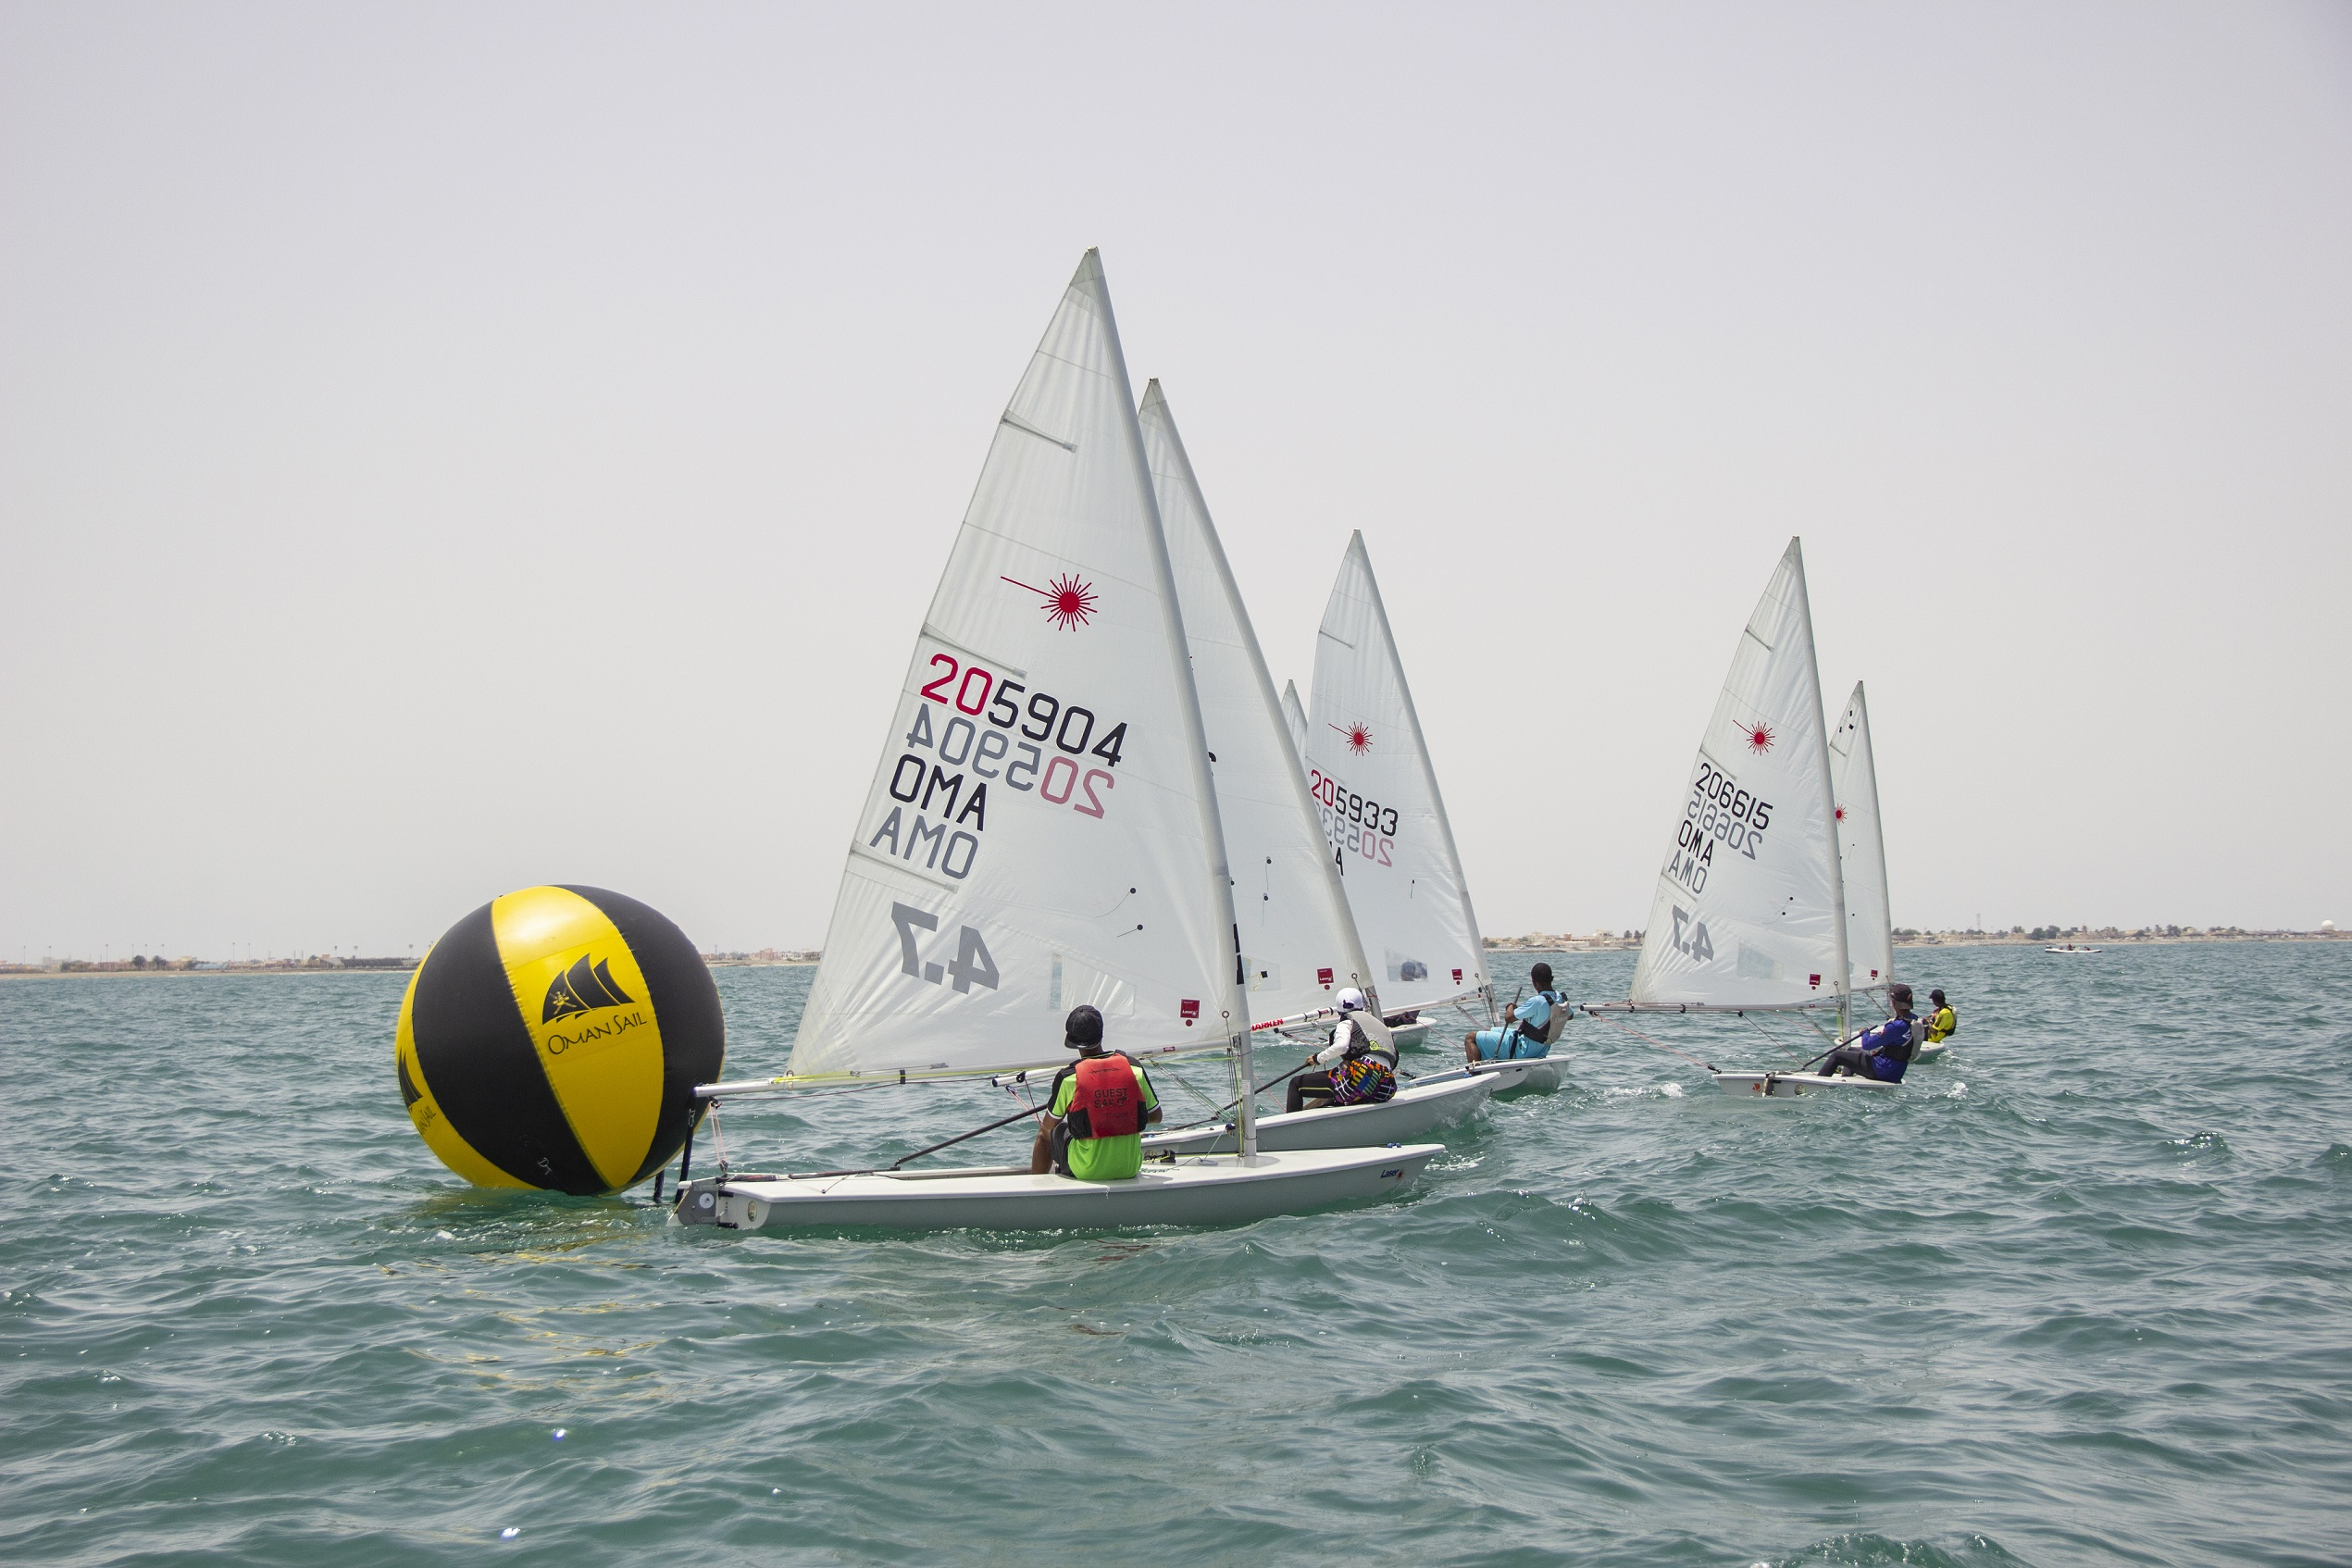 Young racing sailors shine at two-day regatta in Mussanah